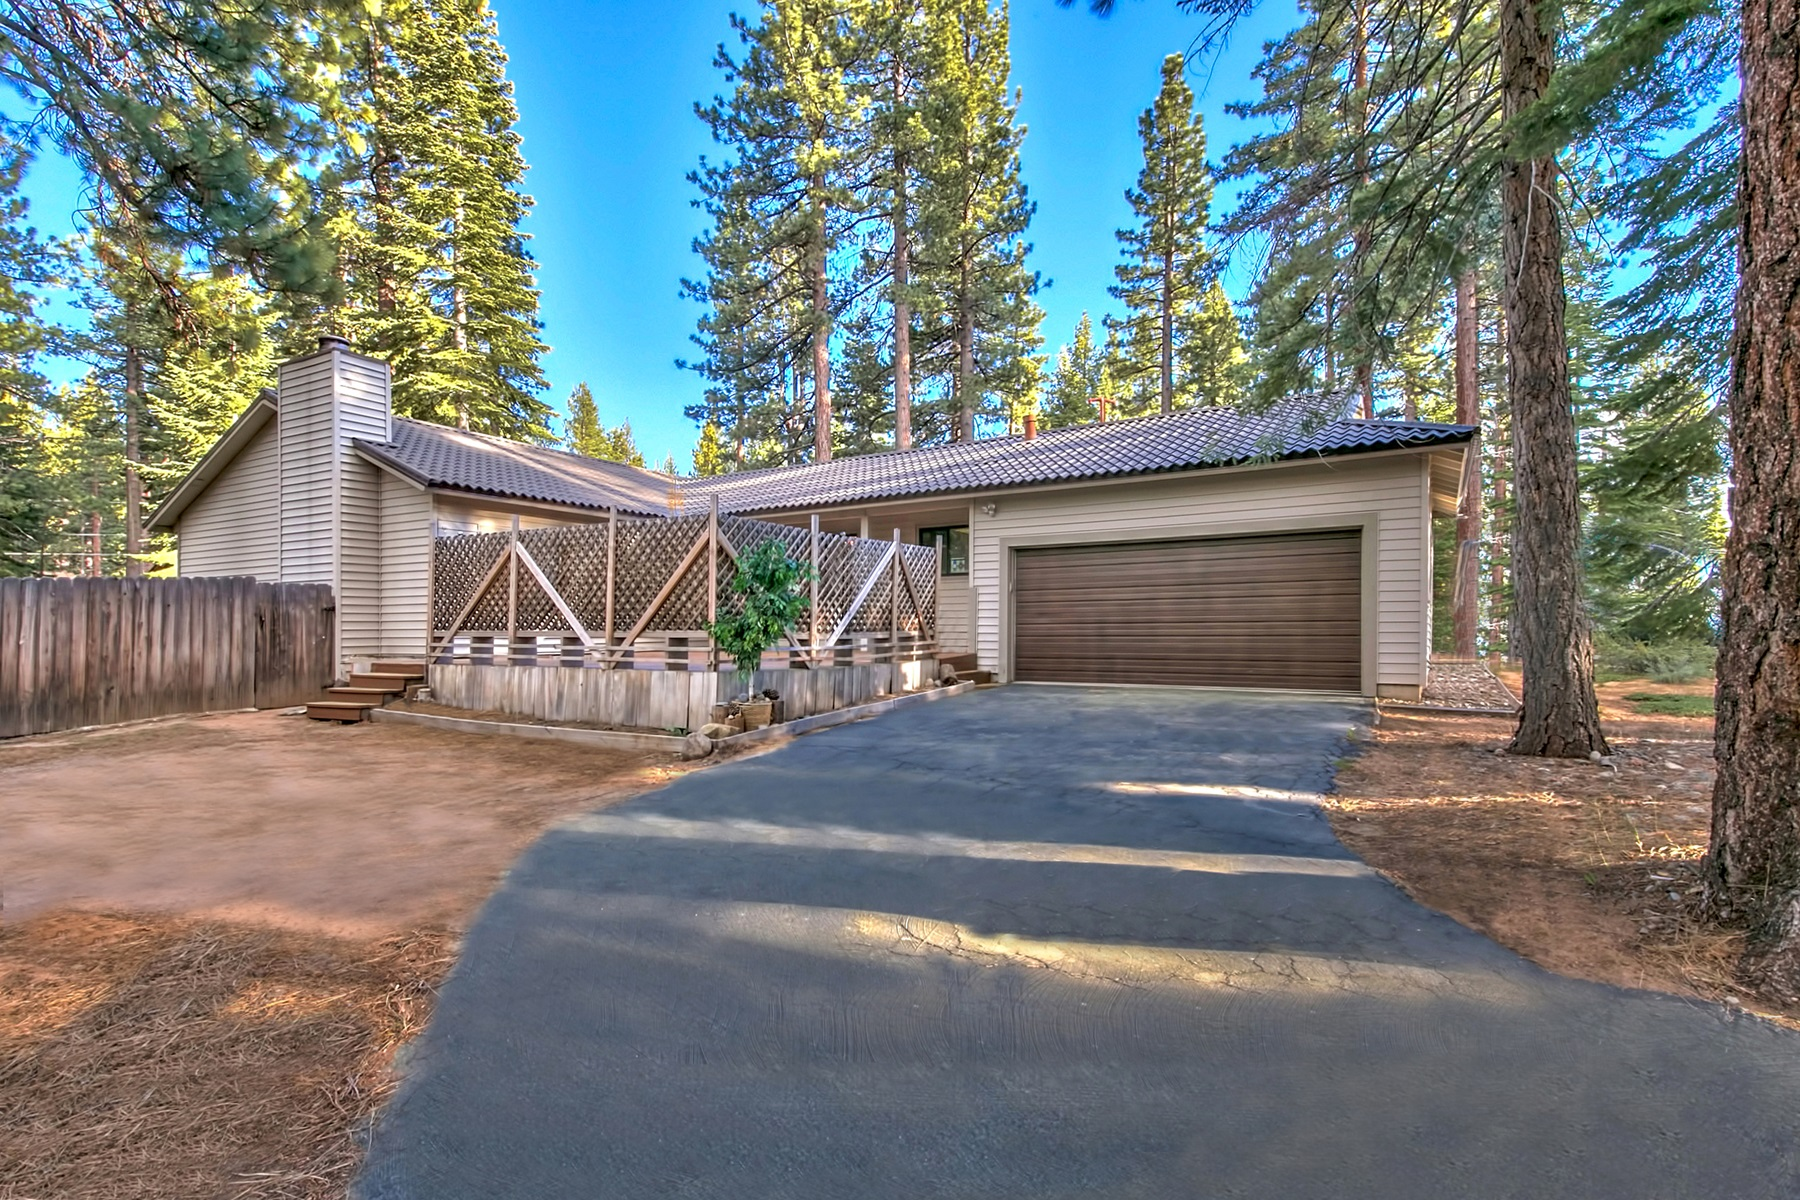 Single Family Home for Active at 3112 Deer Trail South Lake Tahoe, California 96150 United States